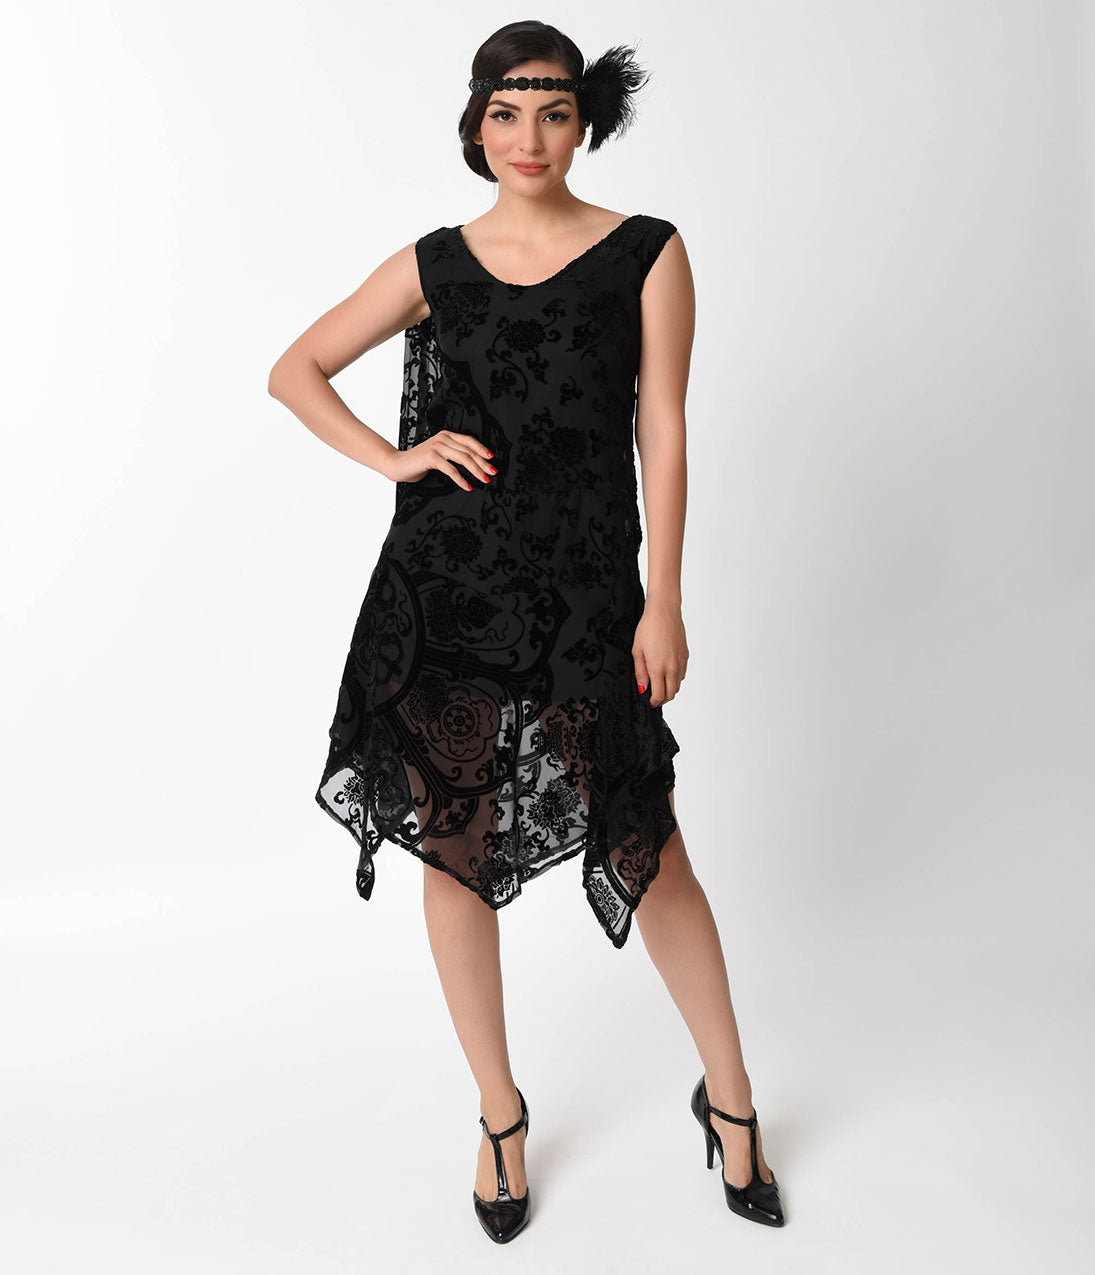 Roaring 20s Costumes- Flapper Costumes, Gangster Costumes 1920S Style Black Burnout Velvet Flapper Dress $77.00 AT vintagedancer.com